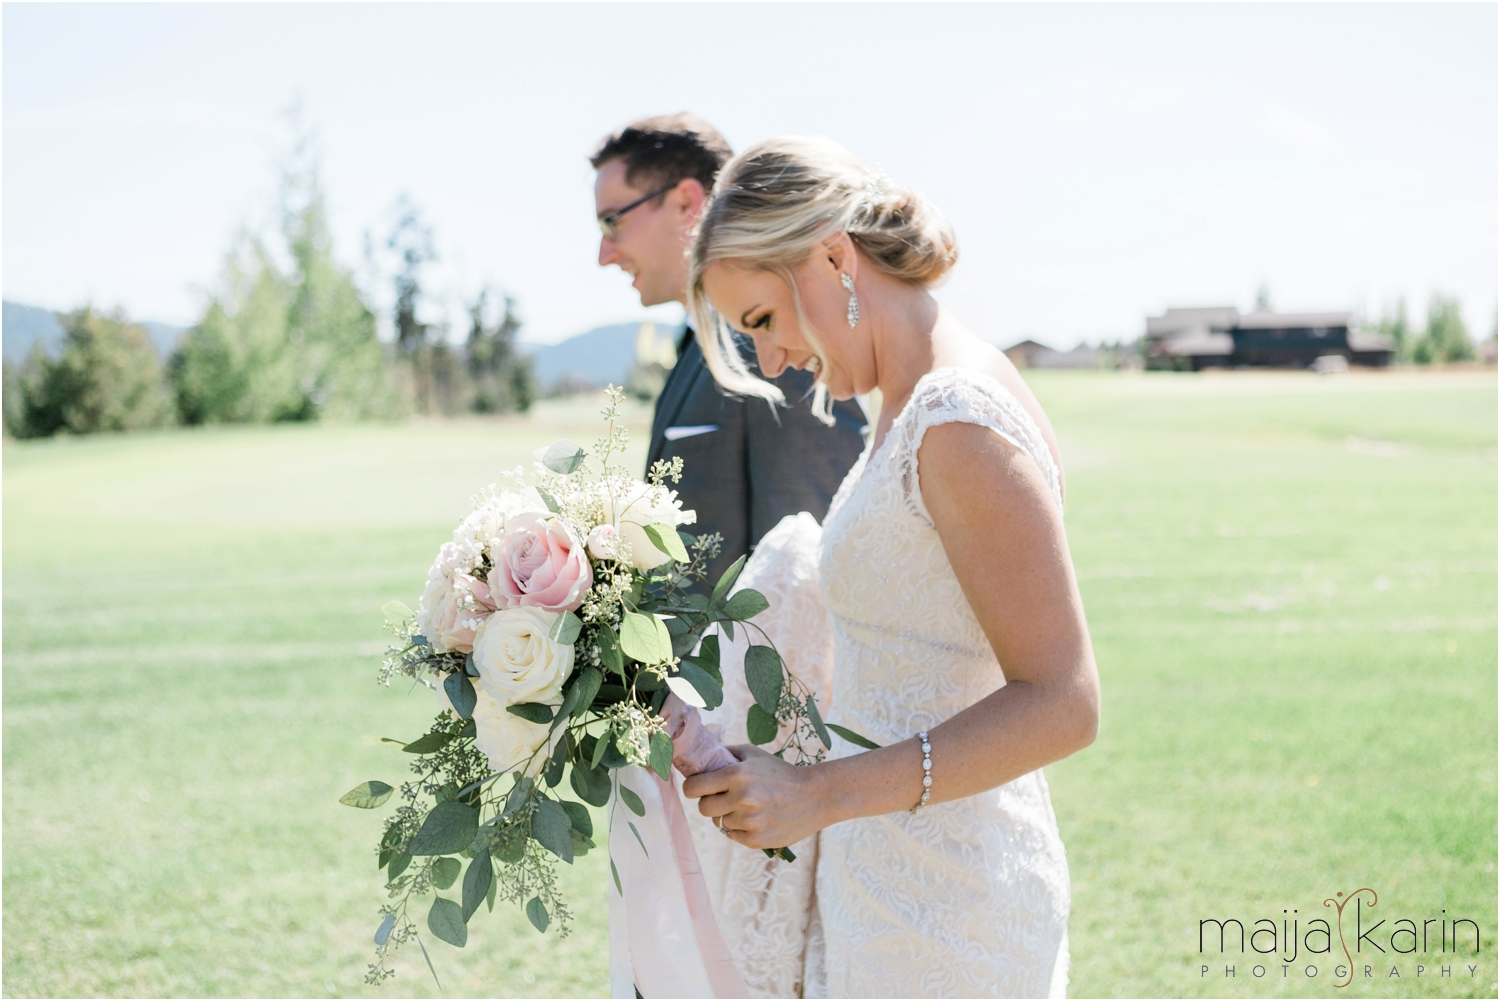 McCall-Idaho-Wedding-Maija-Karin-Photography_0018.jpg